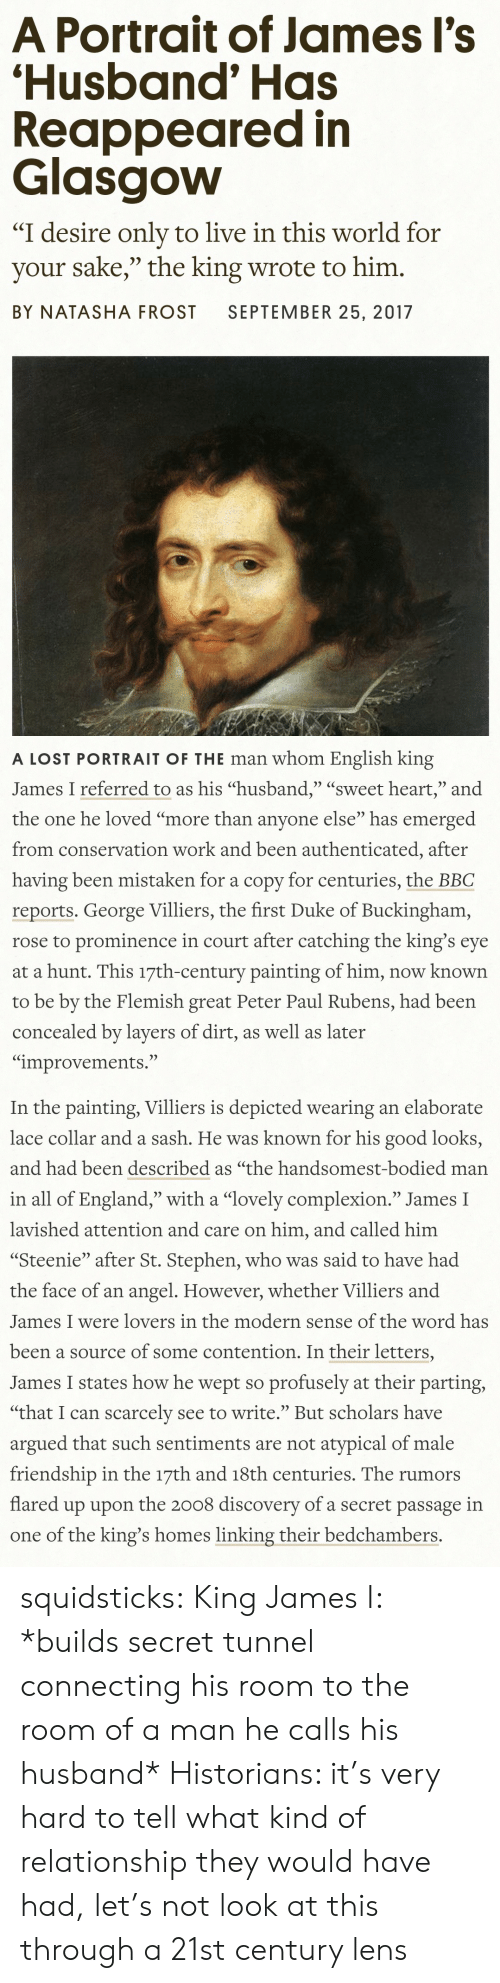 """England, Stephen, and Tumblr: A Portrait of James Il's  'Husband' Has  Reappeared in  Glasgovw  """"I desire only to live in this world for  your sake,"""" the king wrote to him.  BY NATASHA FROST SEPTEMBER 25, 2017   A LOST PORTRAIT OF THE man whom English king  James I referred to as his """"husband,"""" """"sweet heart,"""" and  the one he loved """"more than anvone else"""" has emerged  from conservation work and been authenticated, after  having been mistaken for a copy for centuries, the BBC  reports. George Villiers, the first Duke of Buckingham,  rose to prominence in court after catching the king's eye  at a hunt. This 17th-century painting of him, now known  to be by the Flemish great Peter Paul Rubens, had been  concealed by layers of dirt, as well as later  """"improvements.""""   In the painting, Villiers is depicted wearing an elaborate  lace collar and a sash. He was known for his good looks,  and had been described as """"the handsomest-bodied man  in all of England,"""" with a """"lovely complexion."""" James I  lavished attention and care on him, and called him  """"Steenie"""" after St. Stephen, who was said to have had  the face of an angel. However, whether Villiers and  James I were lovers in the modern sense of the word has  been a source of some contention. In their letters,  James I states how he wept so profusely at their parting  """"that I can scarcelv see to write. But scholars have  argued that such sentiments are not atypical of male  friendship in the 17th and 18th centuries. The rumors  flared up upon the 2008 discoverv of a secret passage in  one of the king's homes linking their bedchambers. squidsticks: King James I: *builds secret tunnel connecting his room to the room of a man he calls his husband*  Historians: it's very hard to tell what kind of relationship they would have had, let's not look at this through a 21st century lens"""